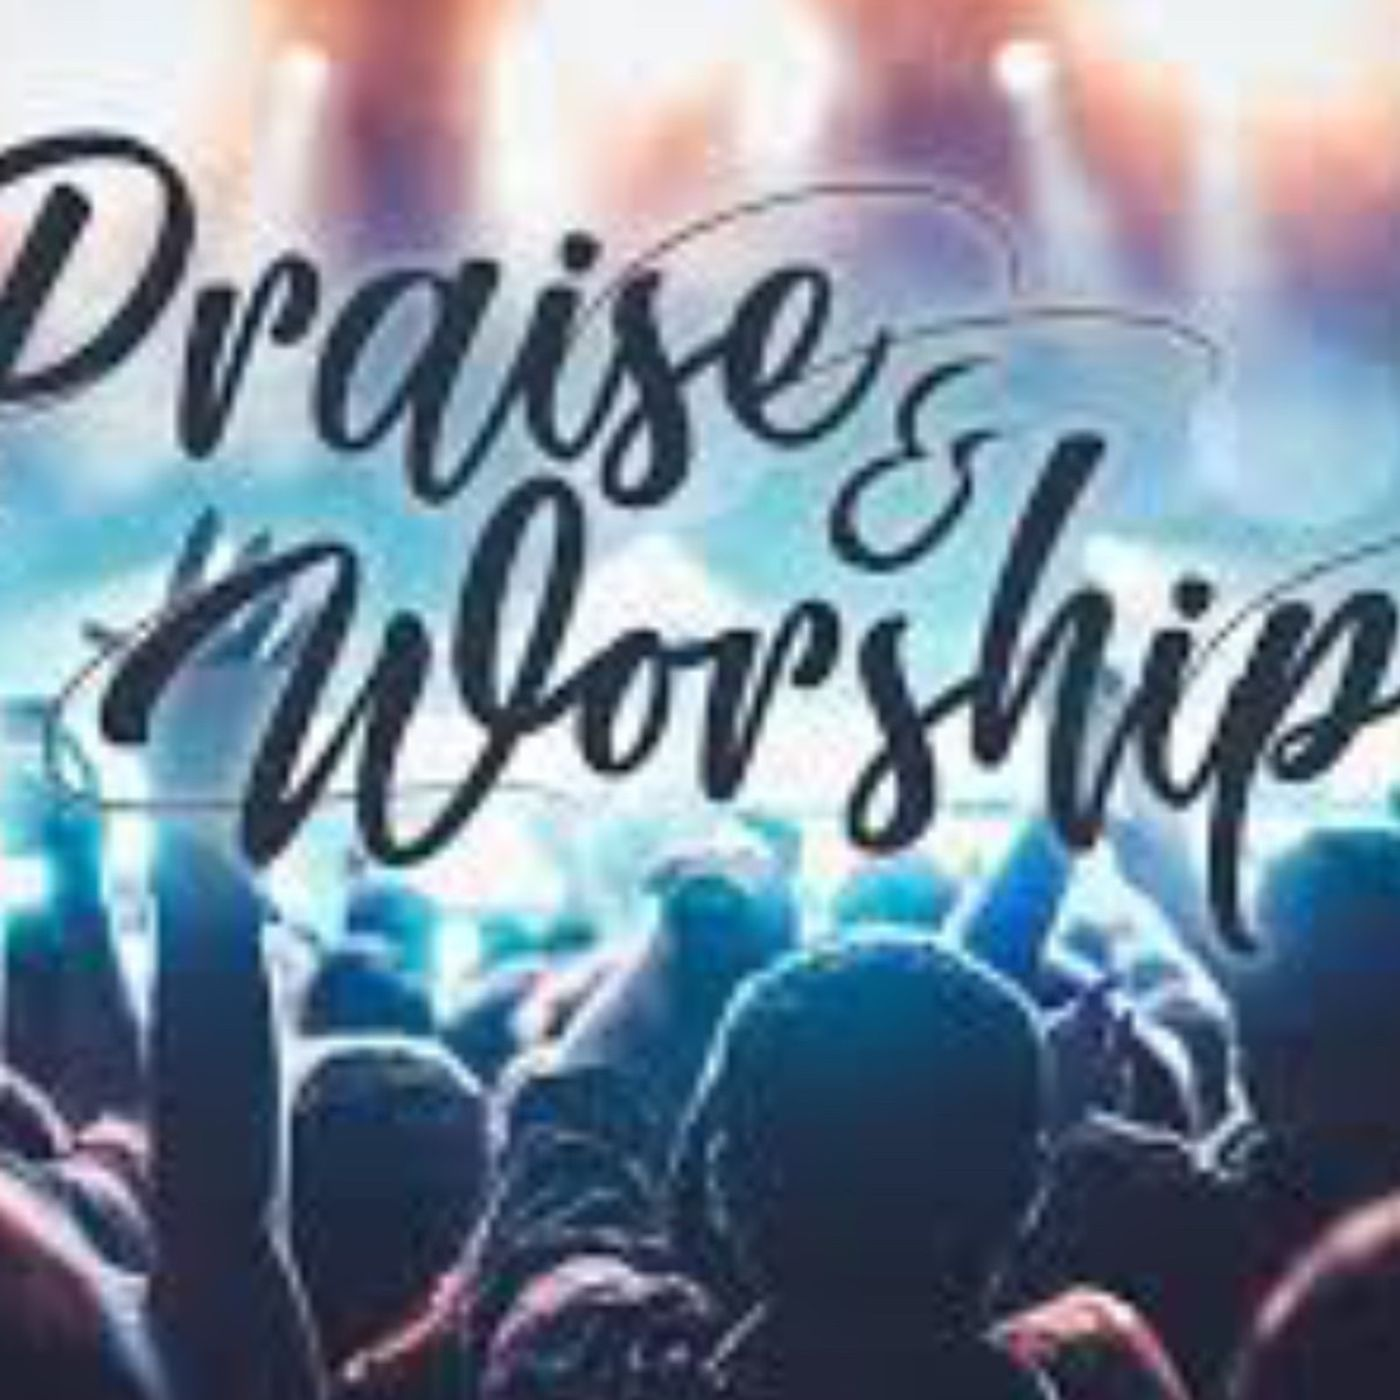 A Time of Praise and Worship (recorded on 3-1-2021)